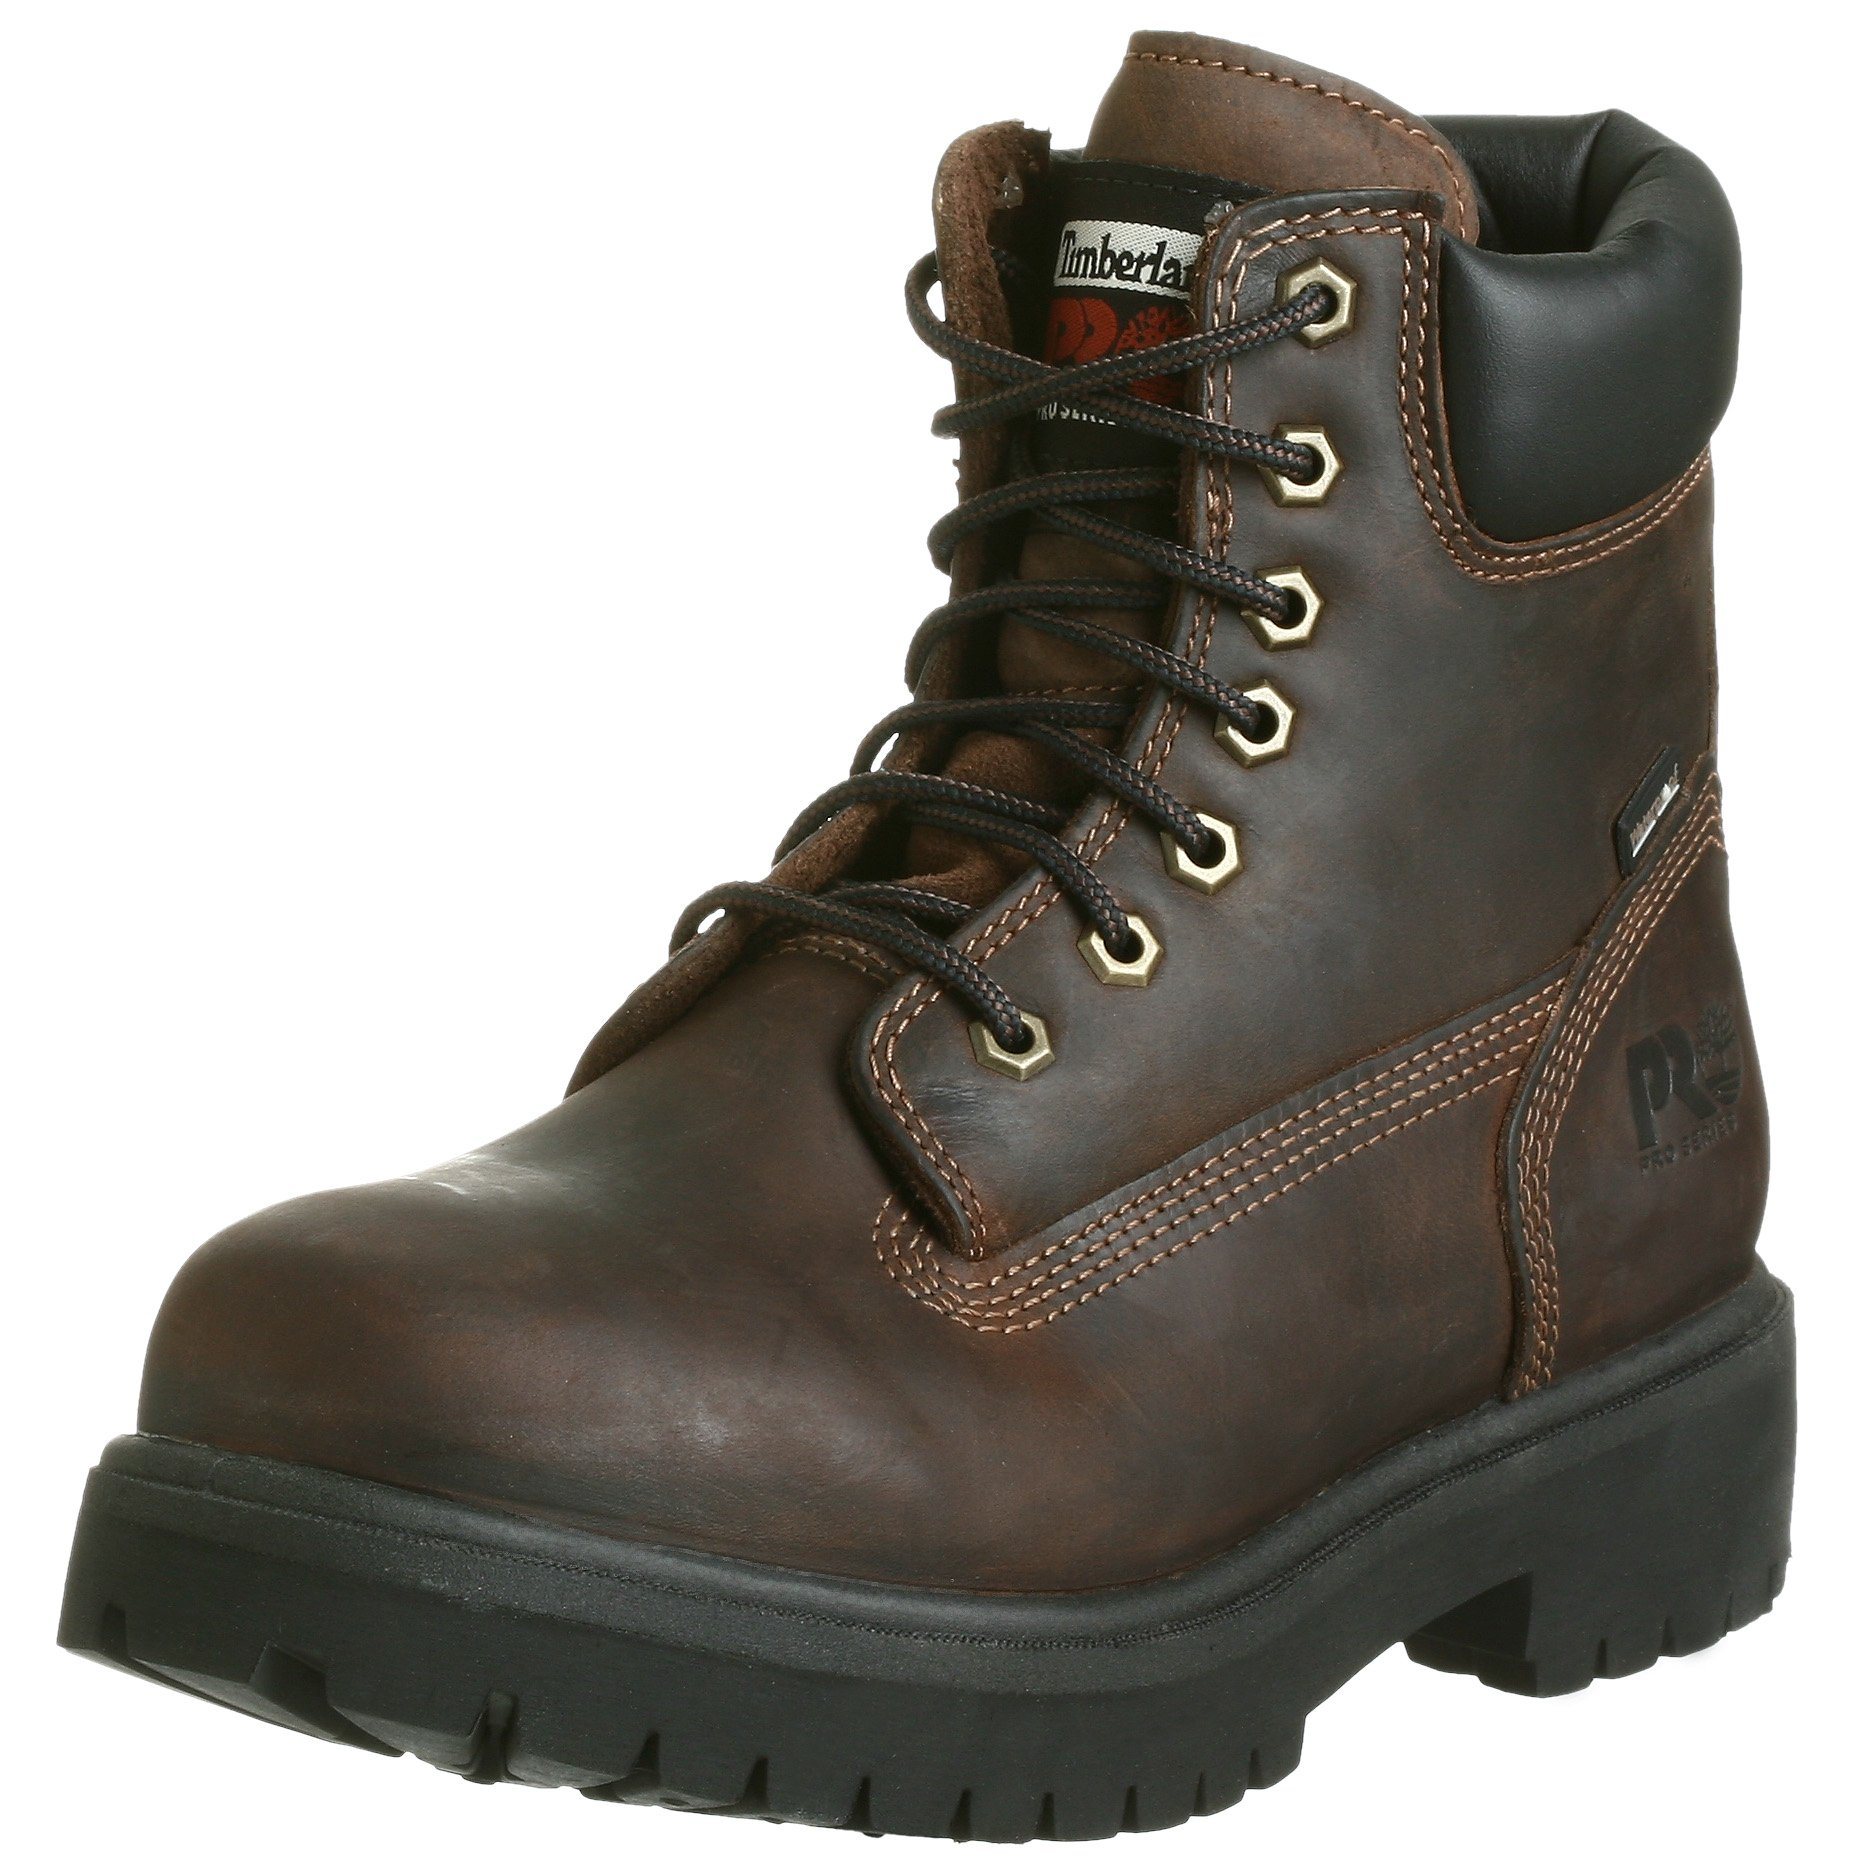 Timberland PRO Men's Direct Attach Six-Inch Soft-Toe Boot, Brown Oiled Full-Grain,12 W